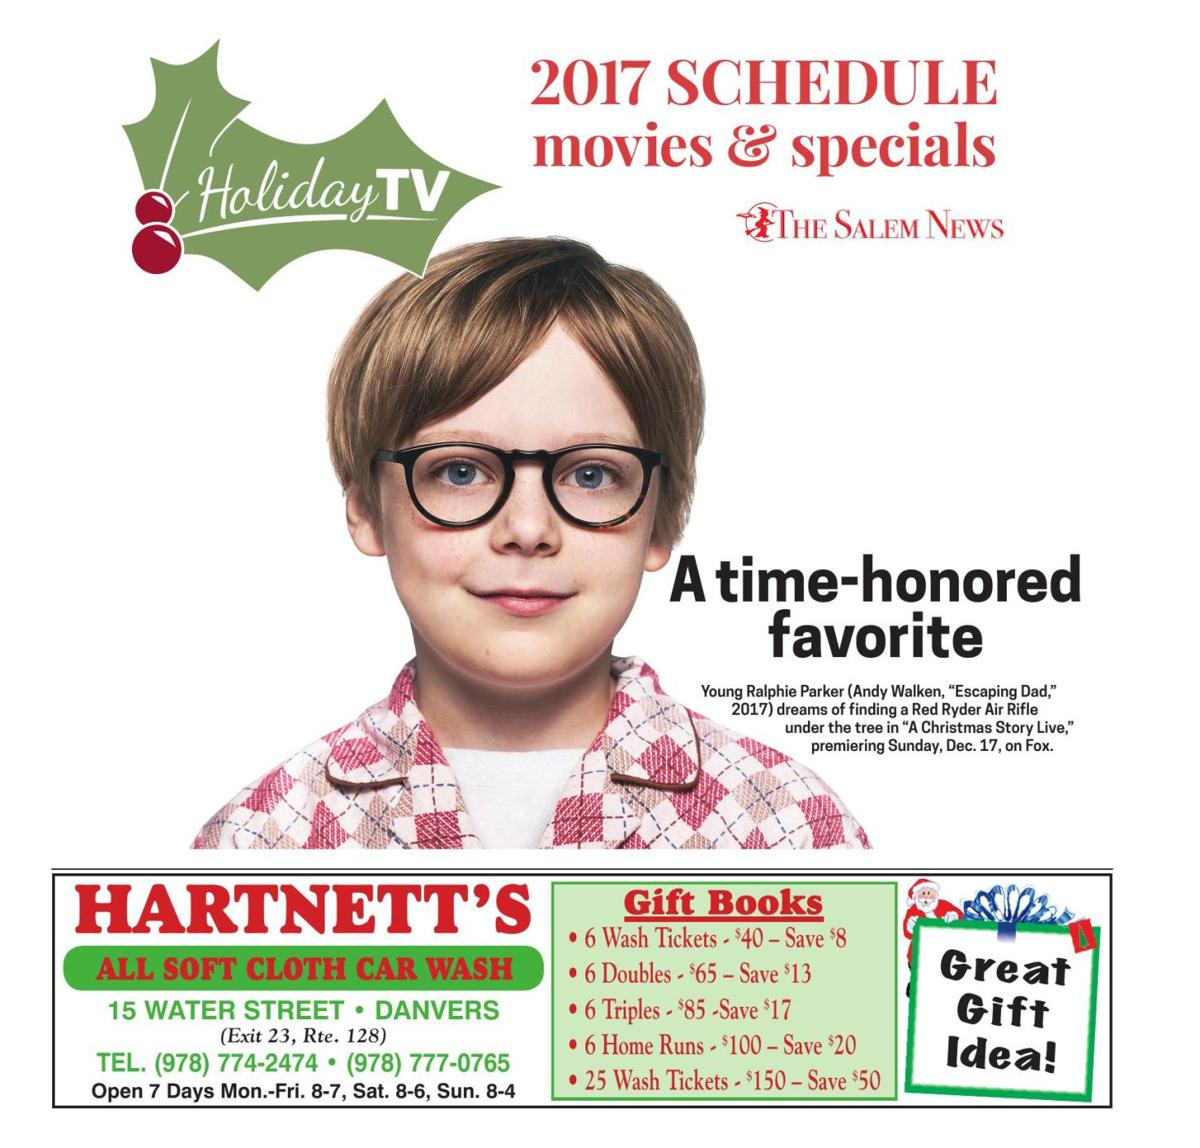 2017 schedule of holiday movies & specials